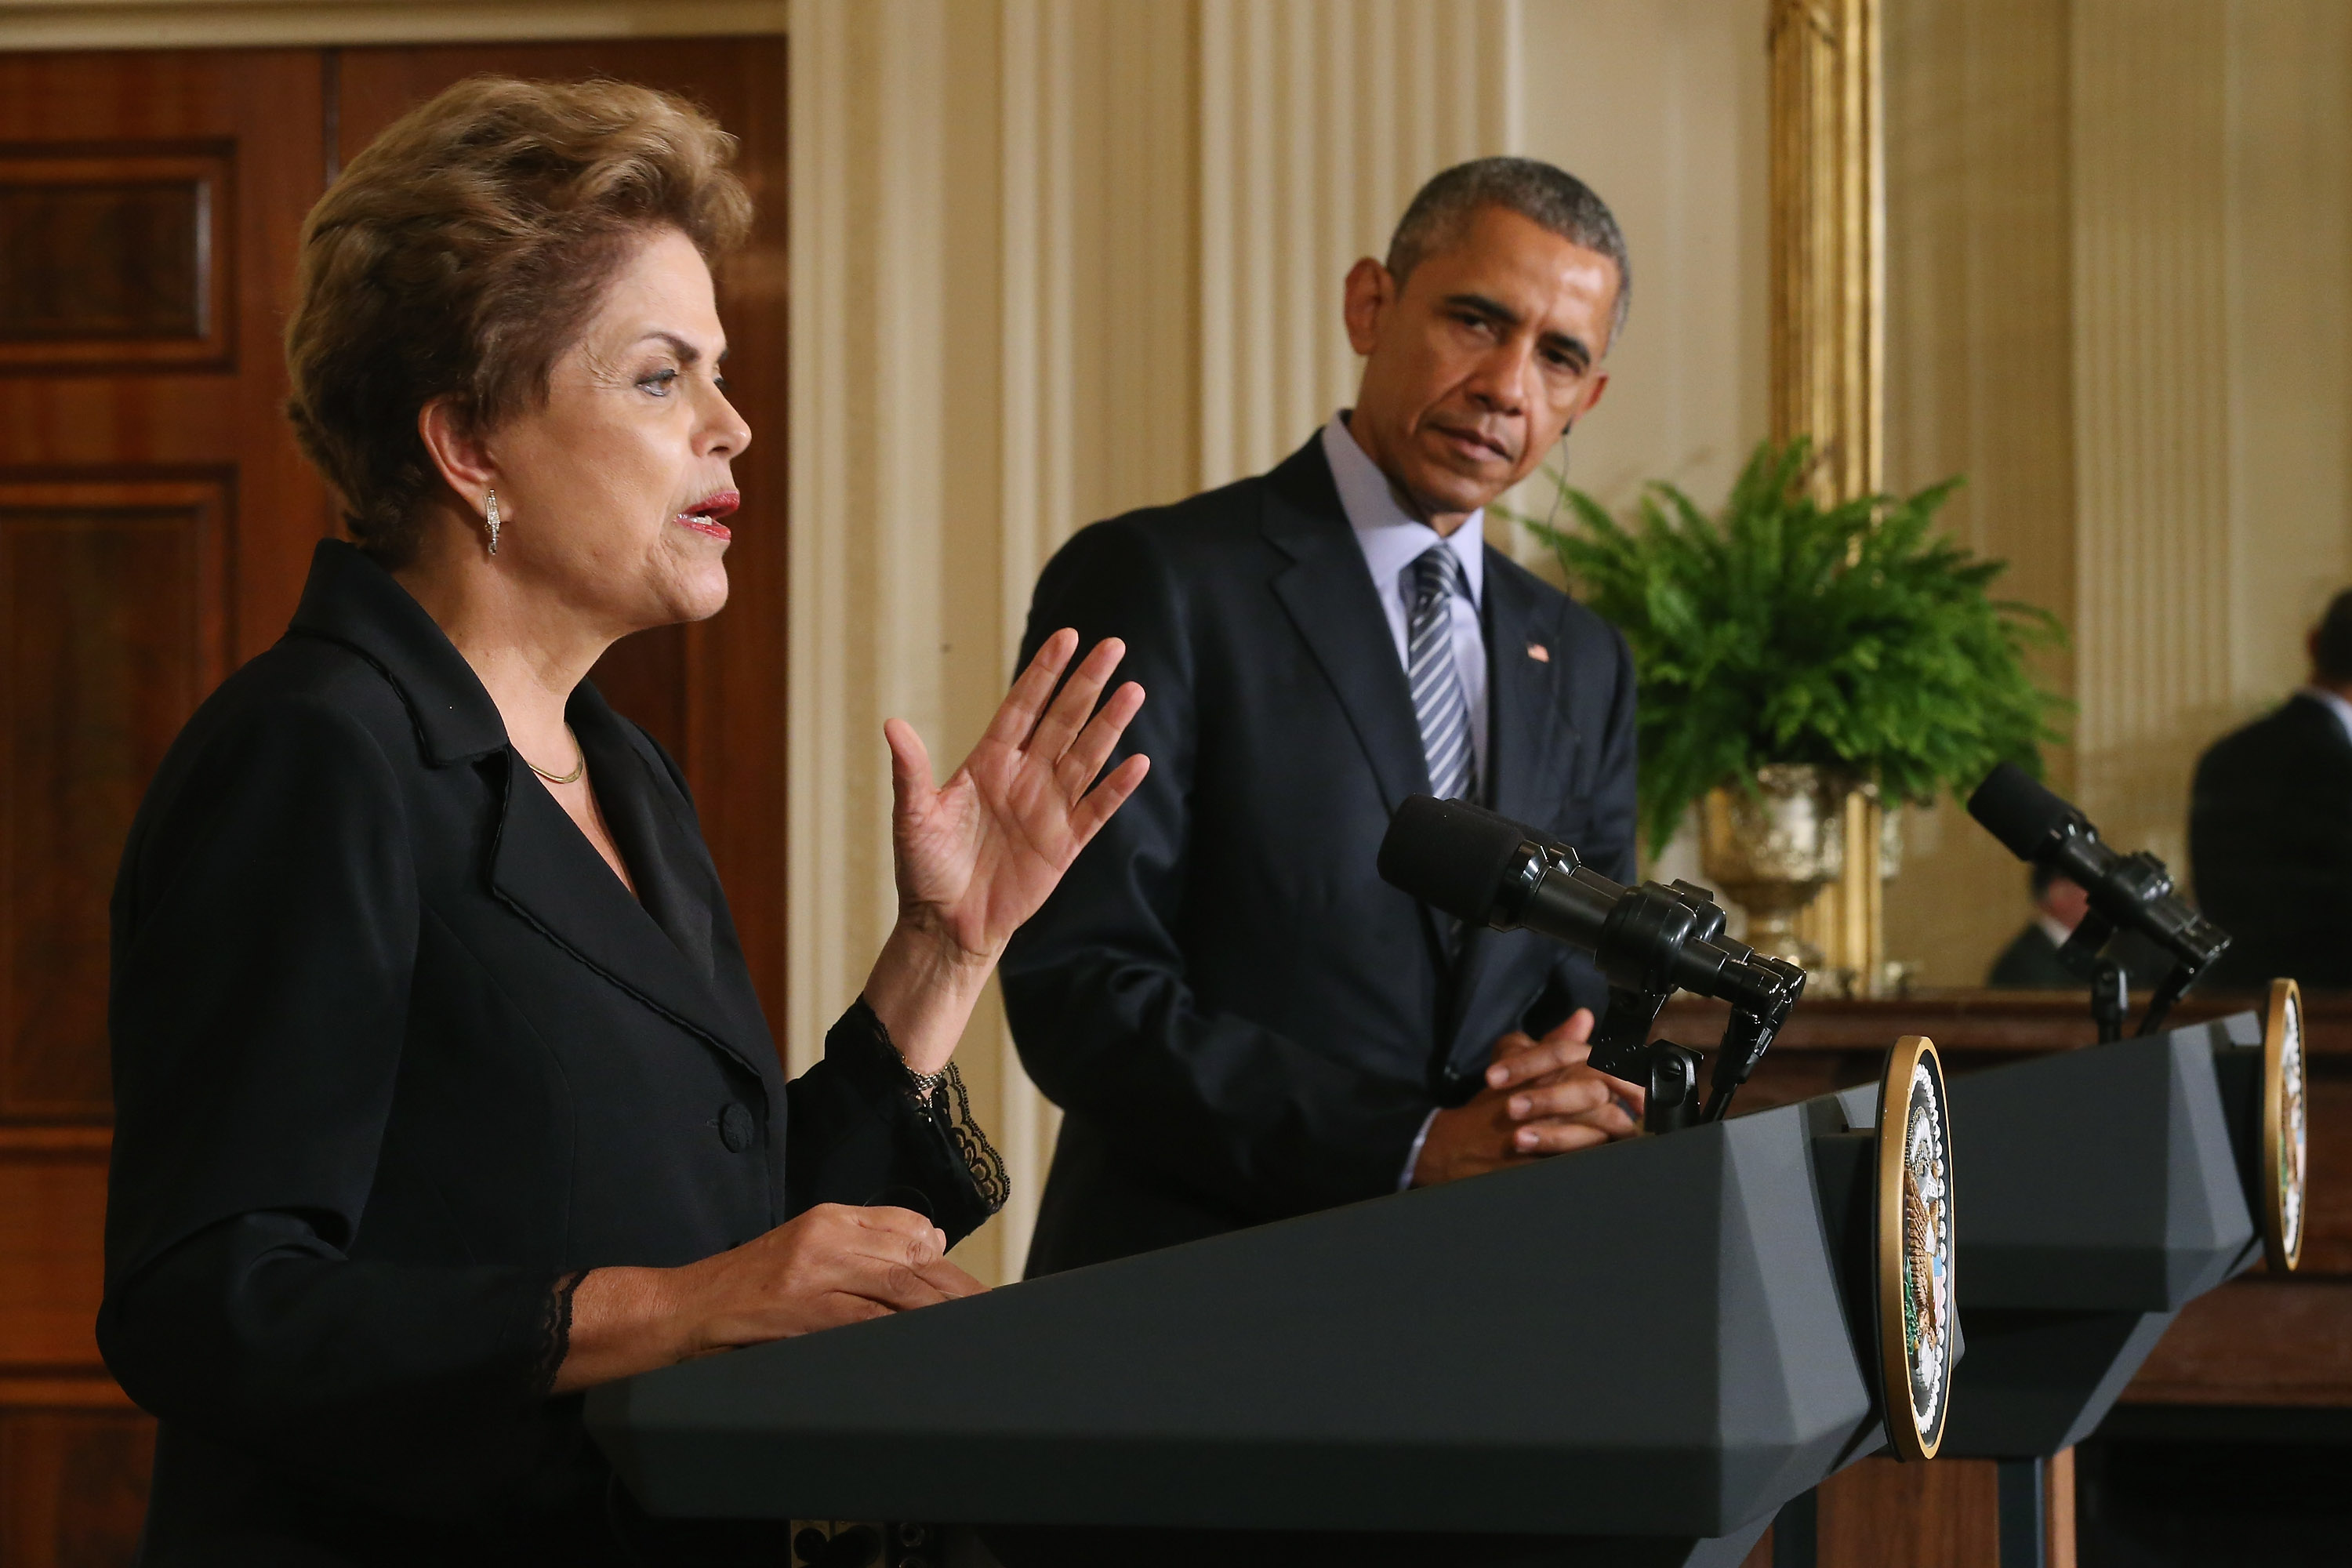 Brazilian President Dilma Rousseff and U.S. President Barack Obama hold a news conference at the White House June 30, 2015.